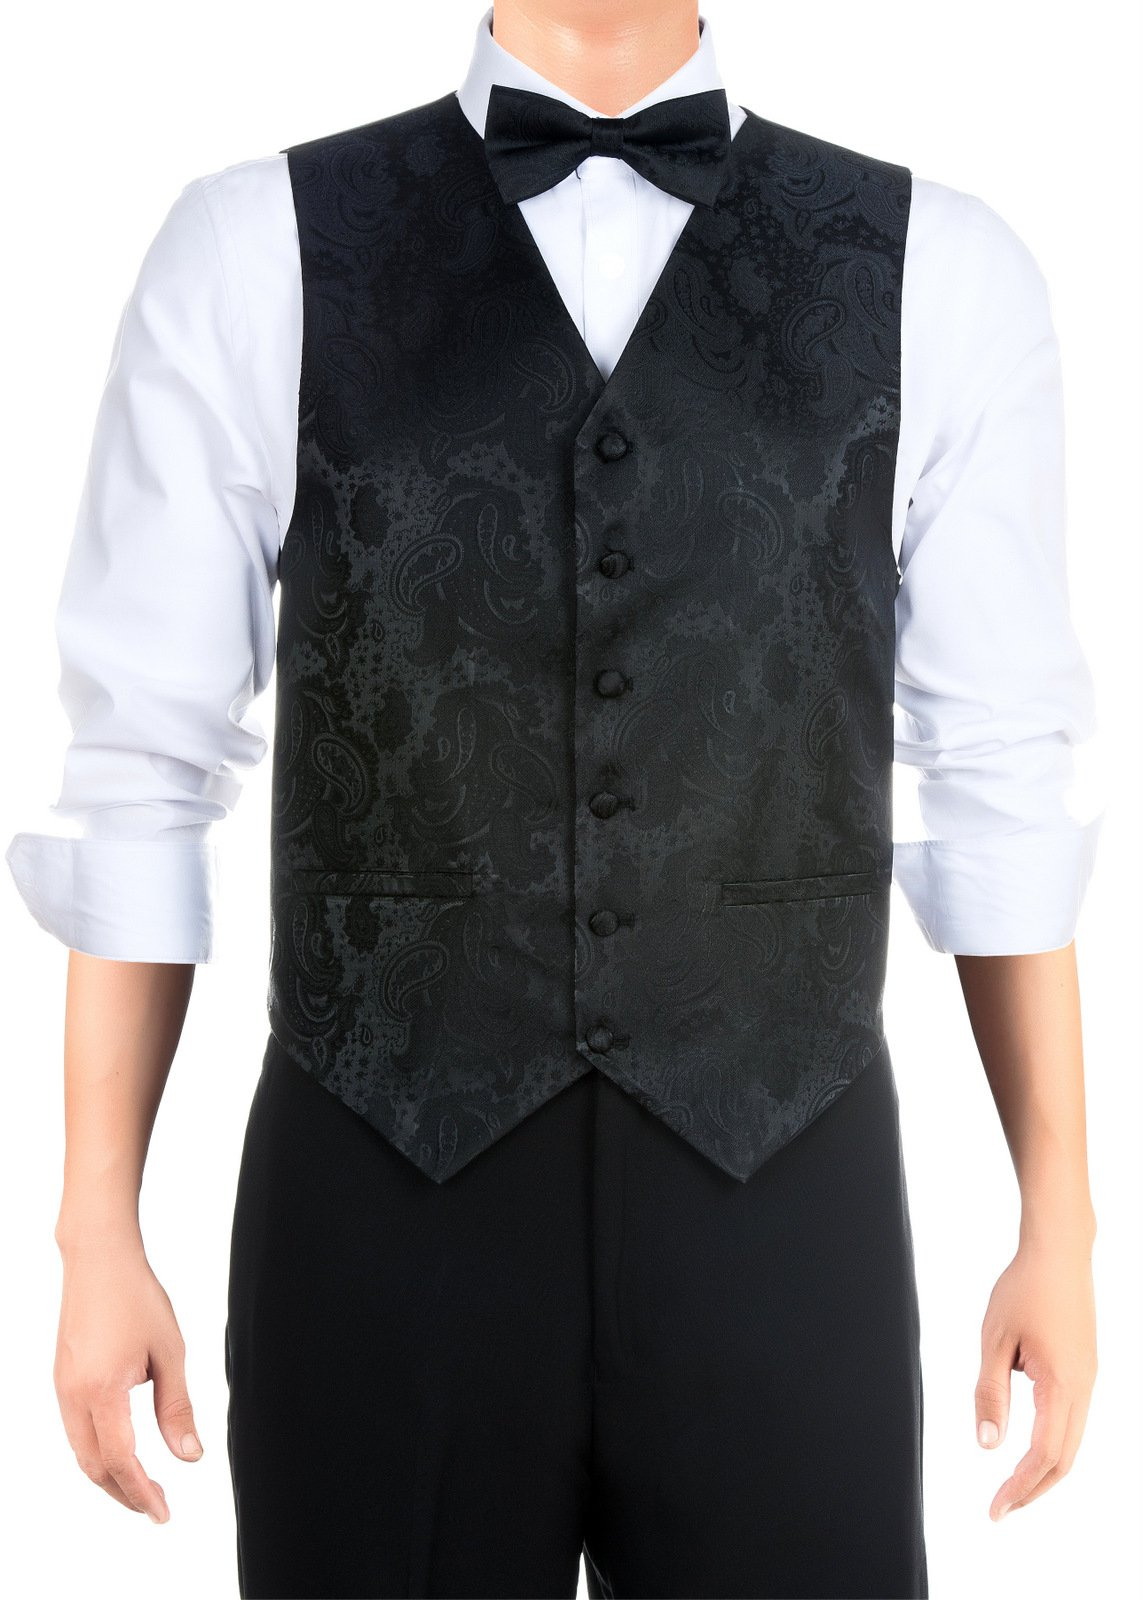 Retreez Men's Paisley Textured Woven Men's Suit Vest, Dress Vest Set with matching Tie and Pre-Tied Bow Tie, Gift Box Set as a Christmas Gift, Birthday Gift - Black, Extra Small